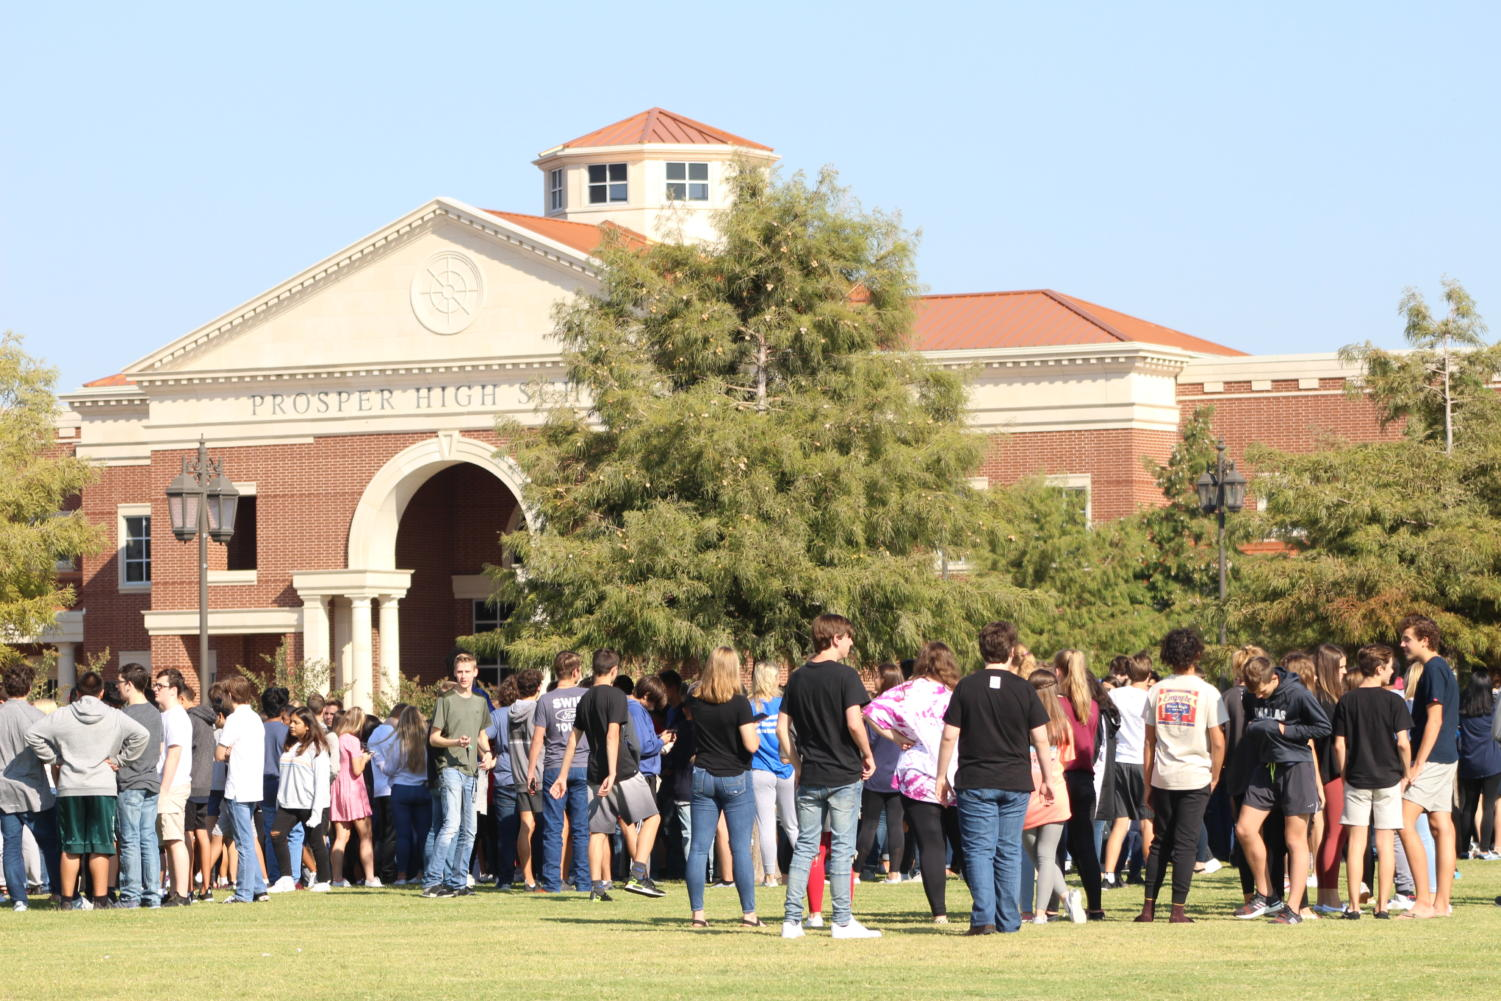 Students gather outside after the fire bells rang throughout Prosper High School at 10:23 on Thursday, Oct. 3. While the drill only lasted four minutes, it gave new students an insight into what is expected in the safety of our students.